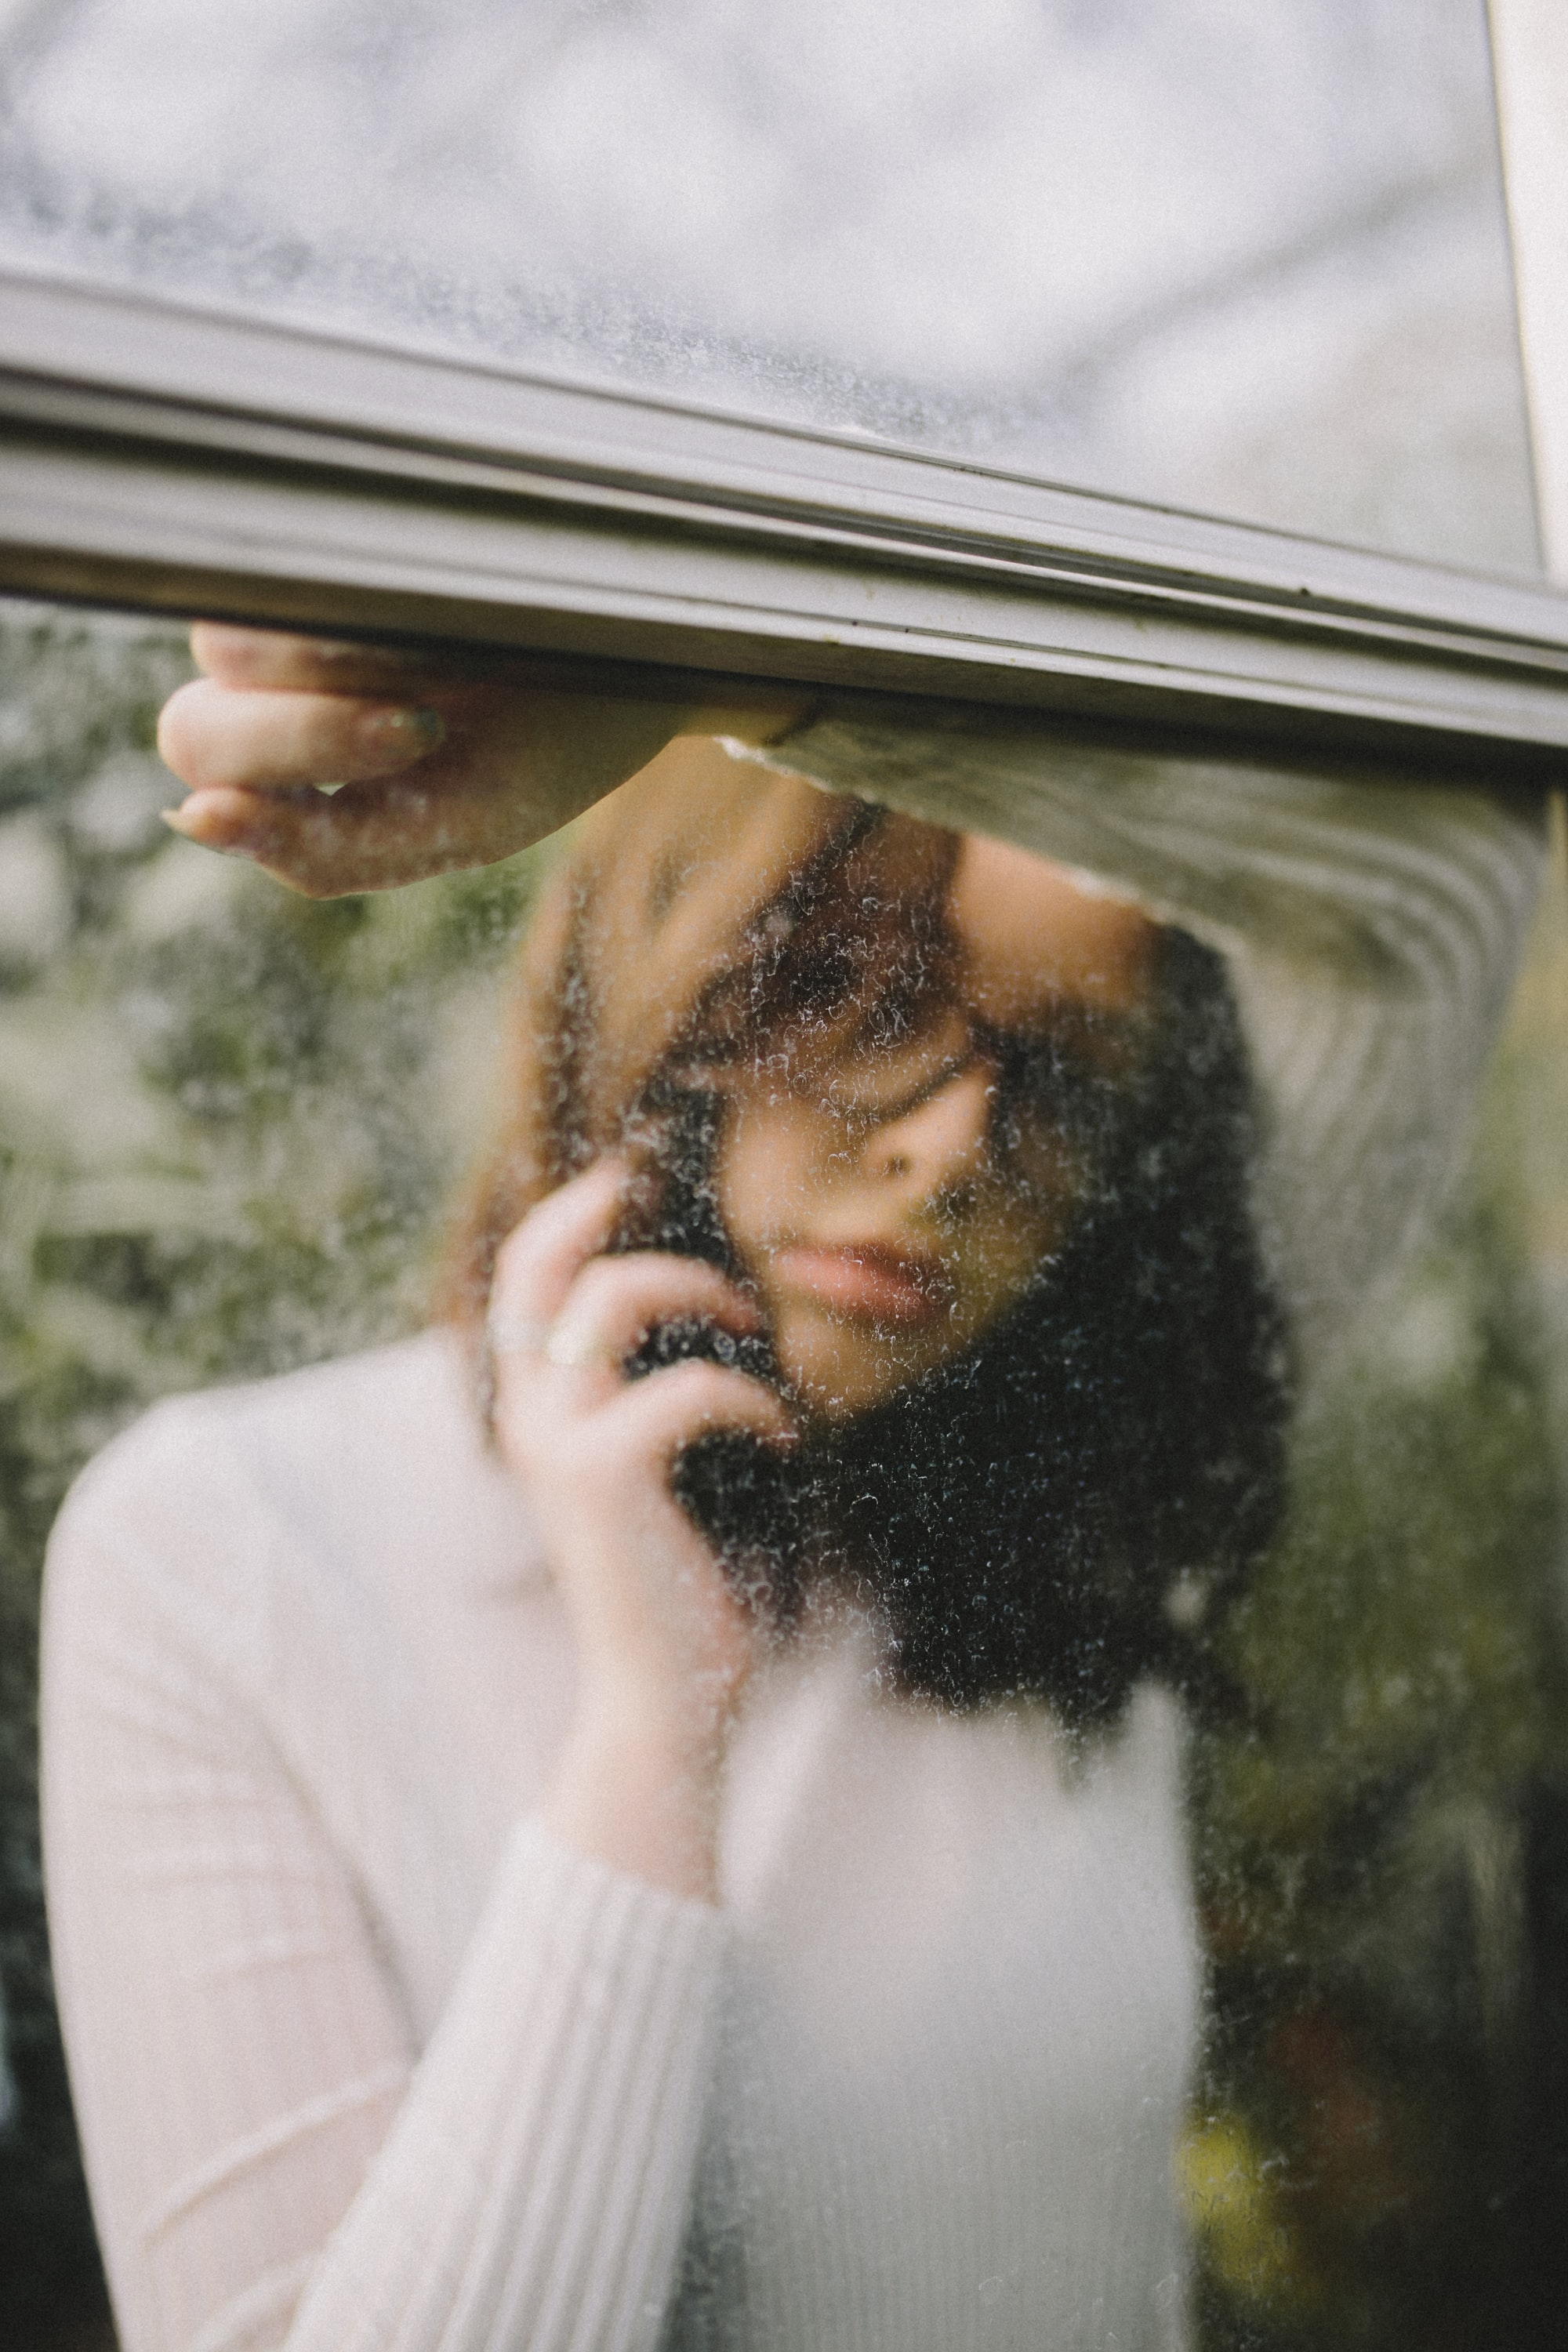 Reflection of a woman leaning against a car window holding a phone